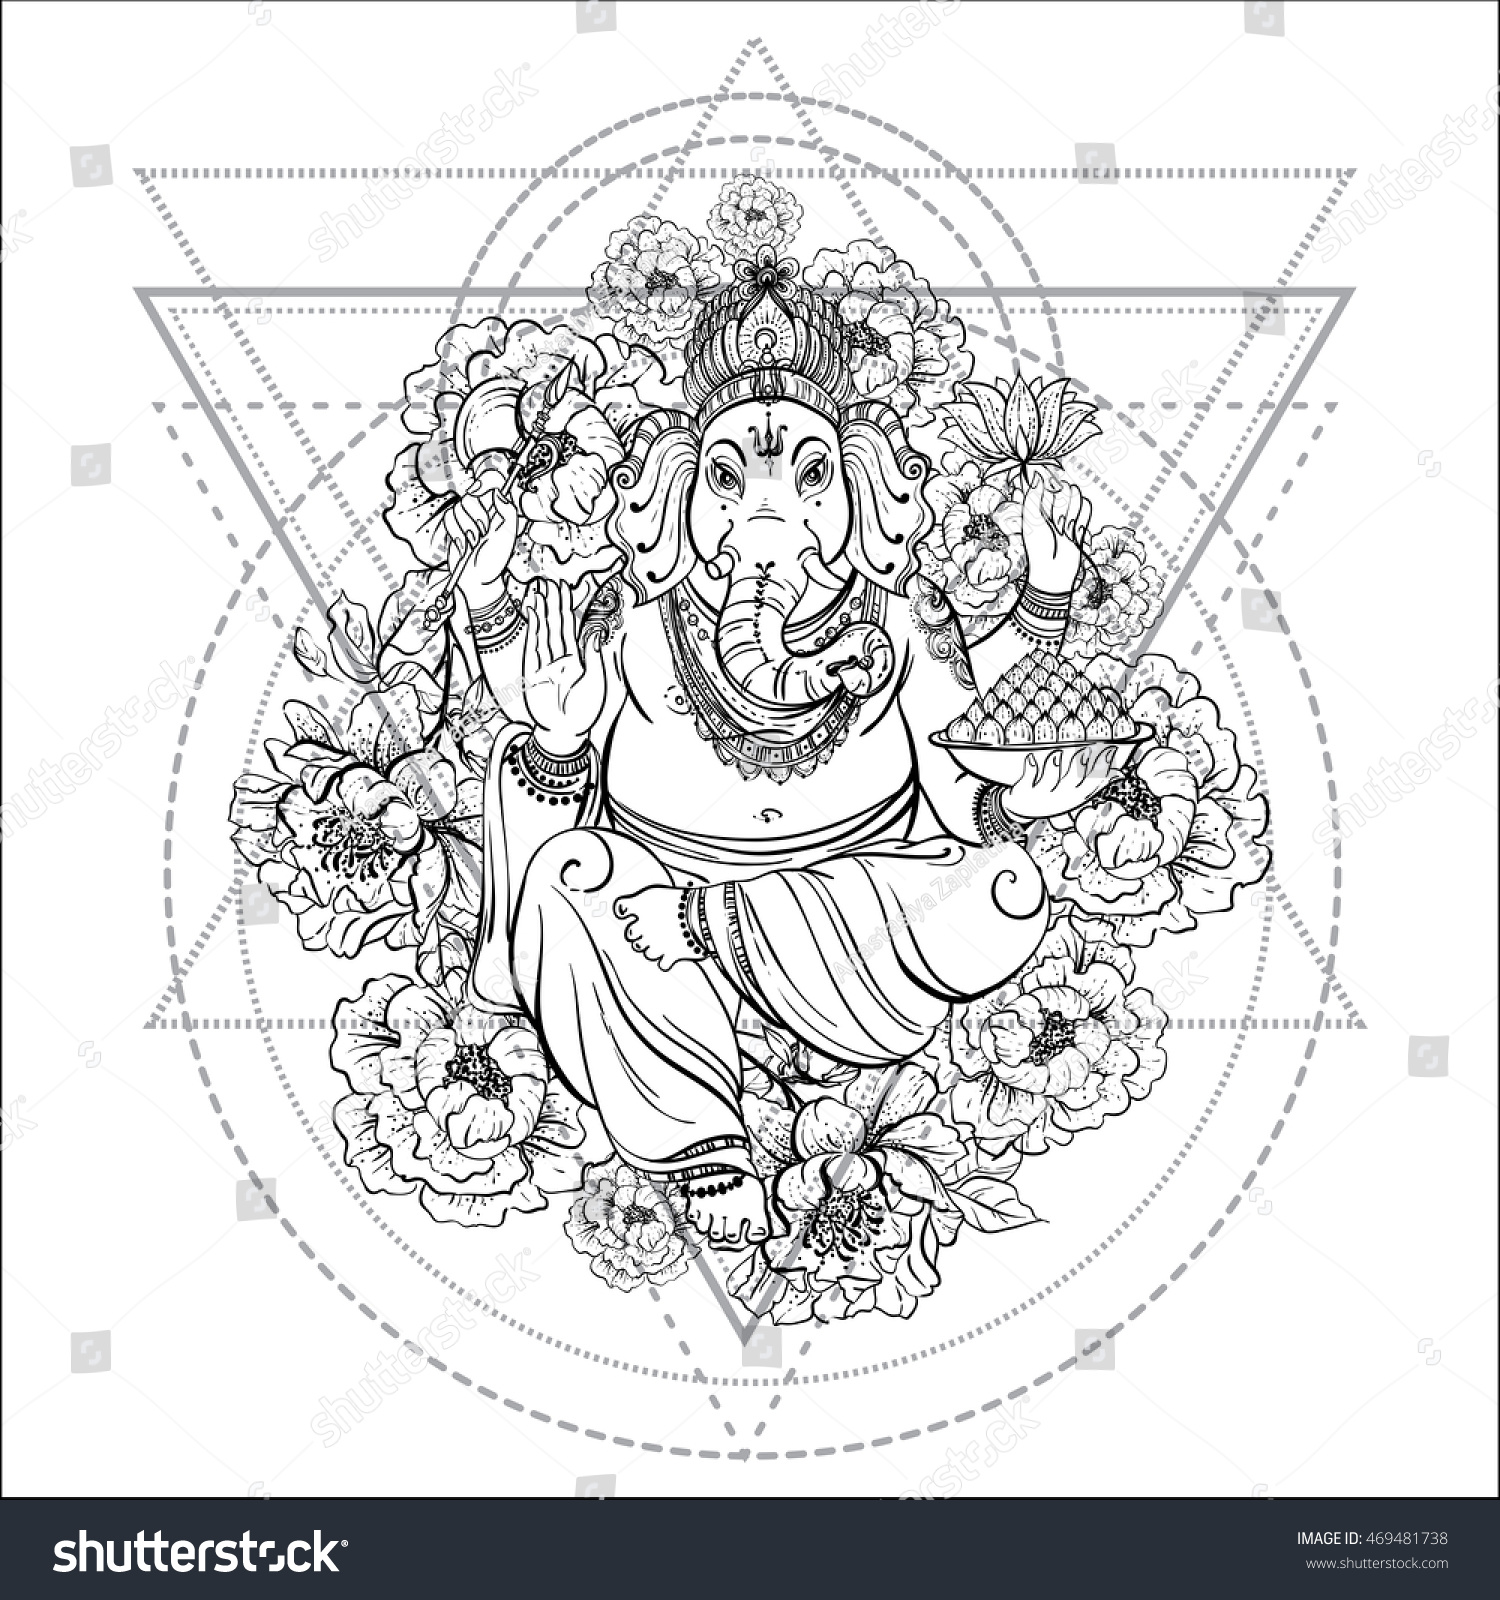 sitting lord ganesha with peony flower isolated on white sacred geometry vintage decorative composition - Sacred Geometry Coloring Book